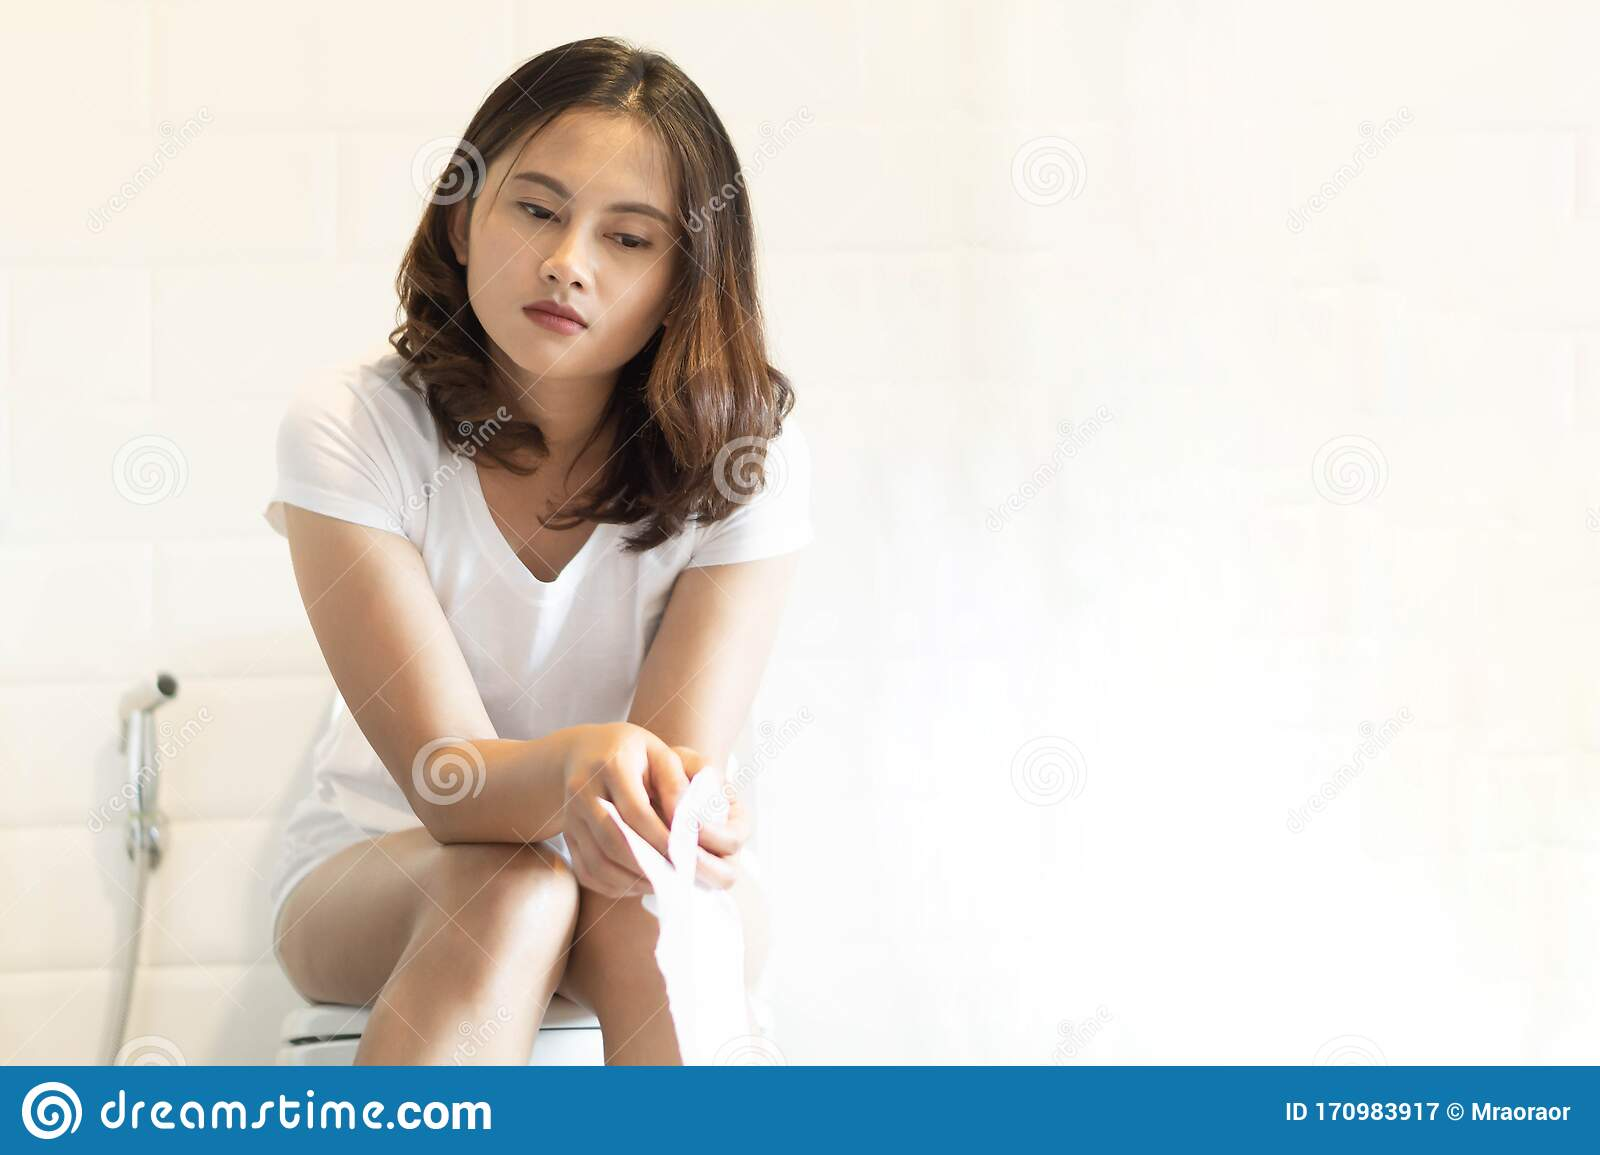 Closeup Woman Sitting On Toilet In The Morning With Foot